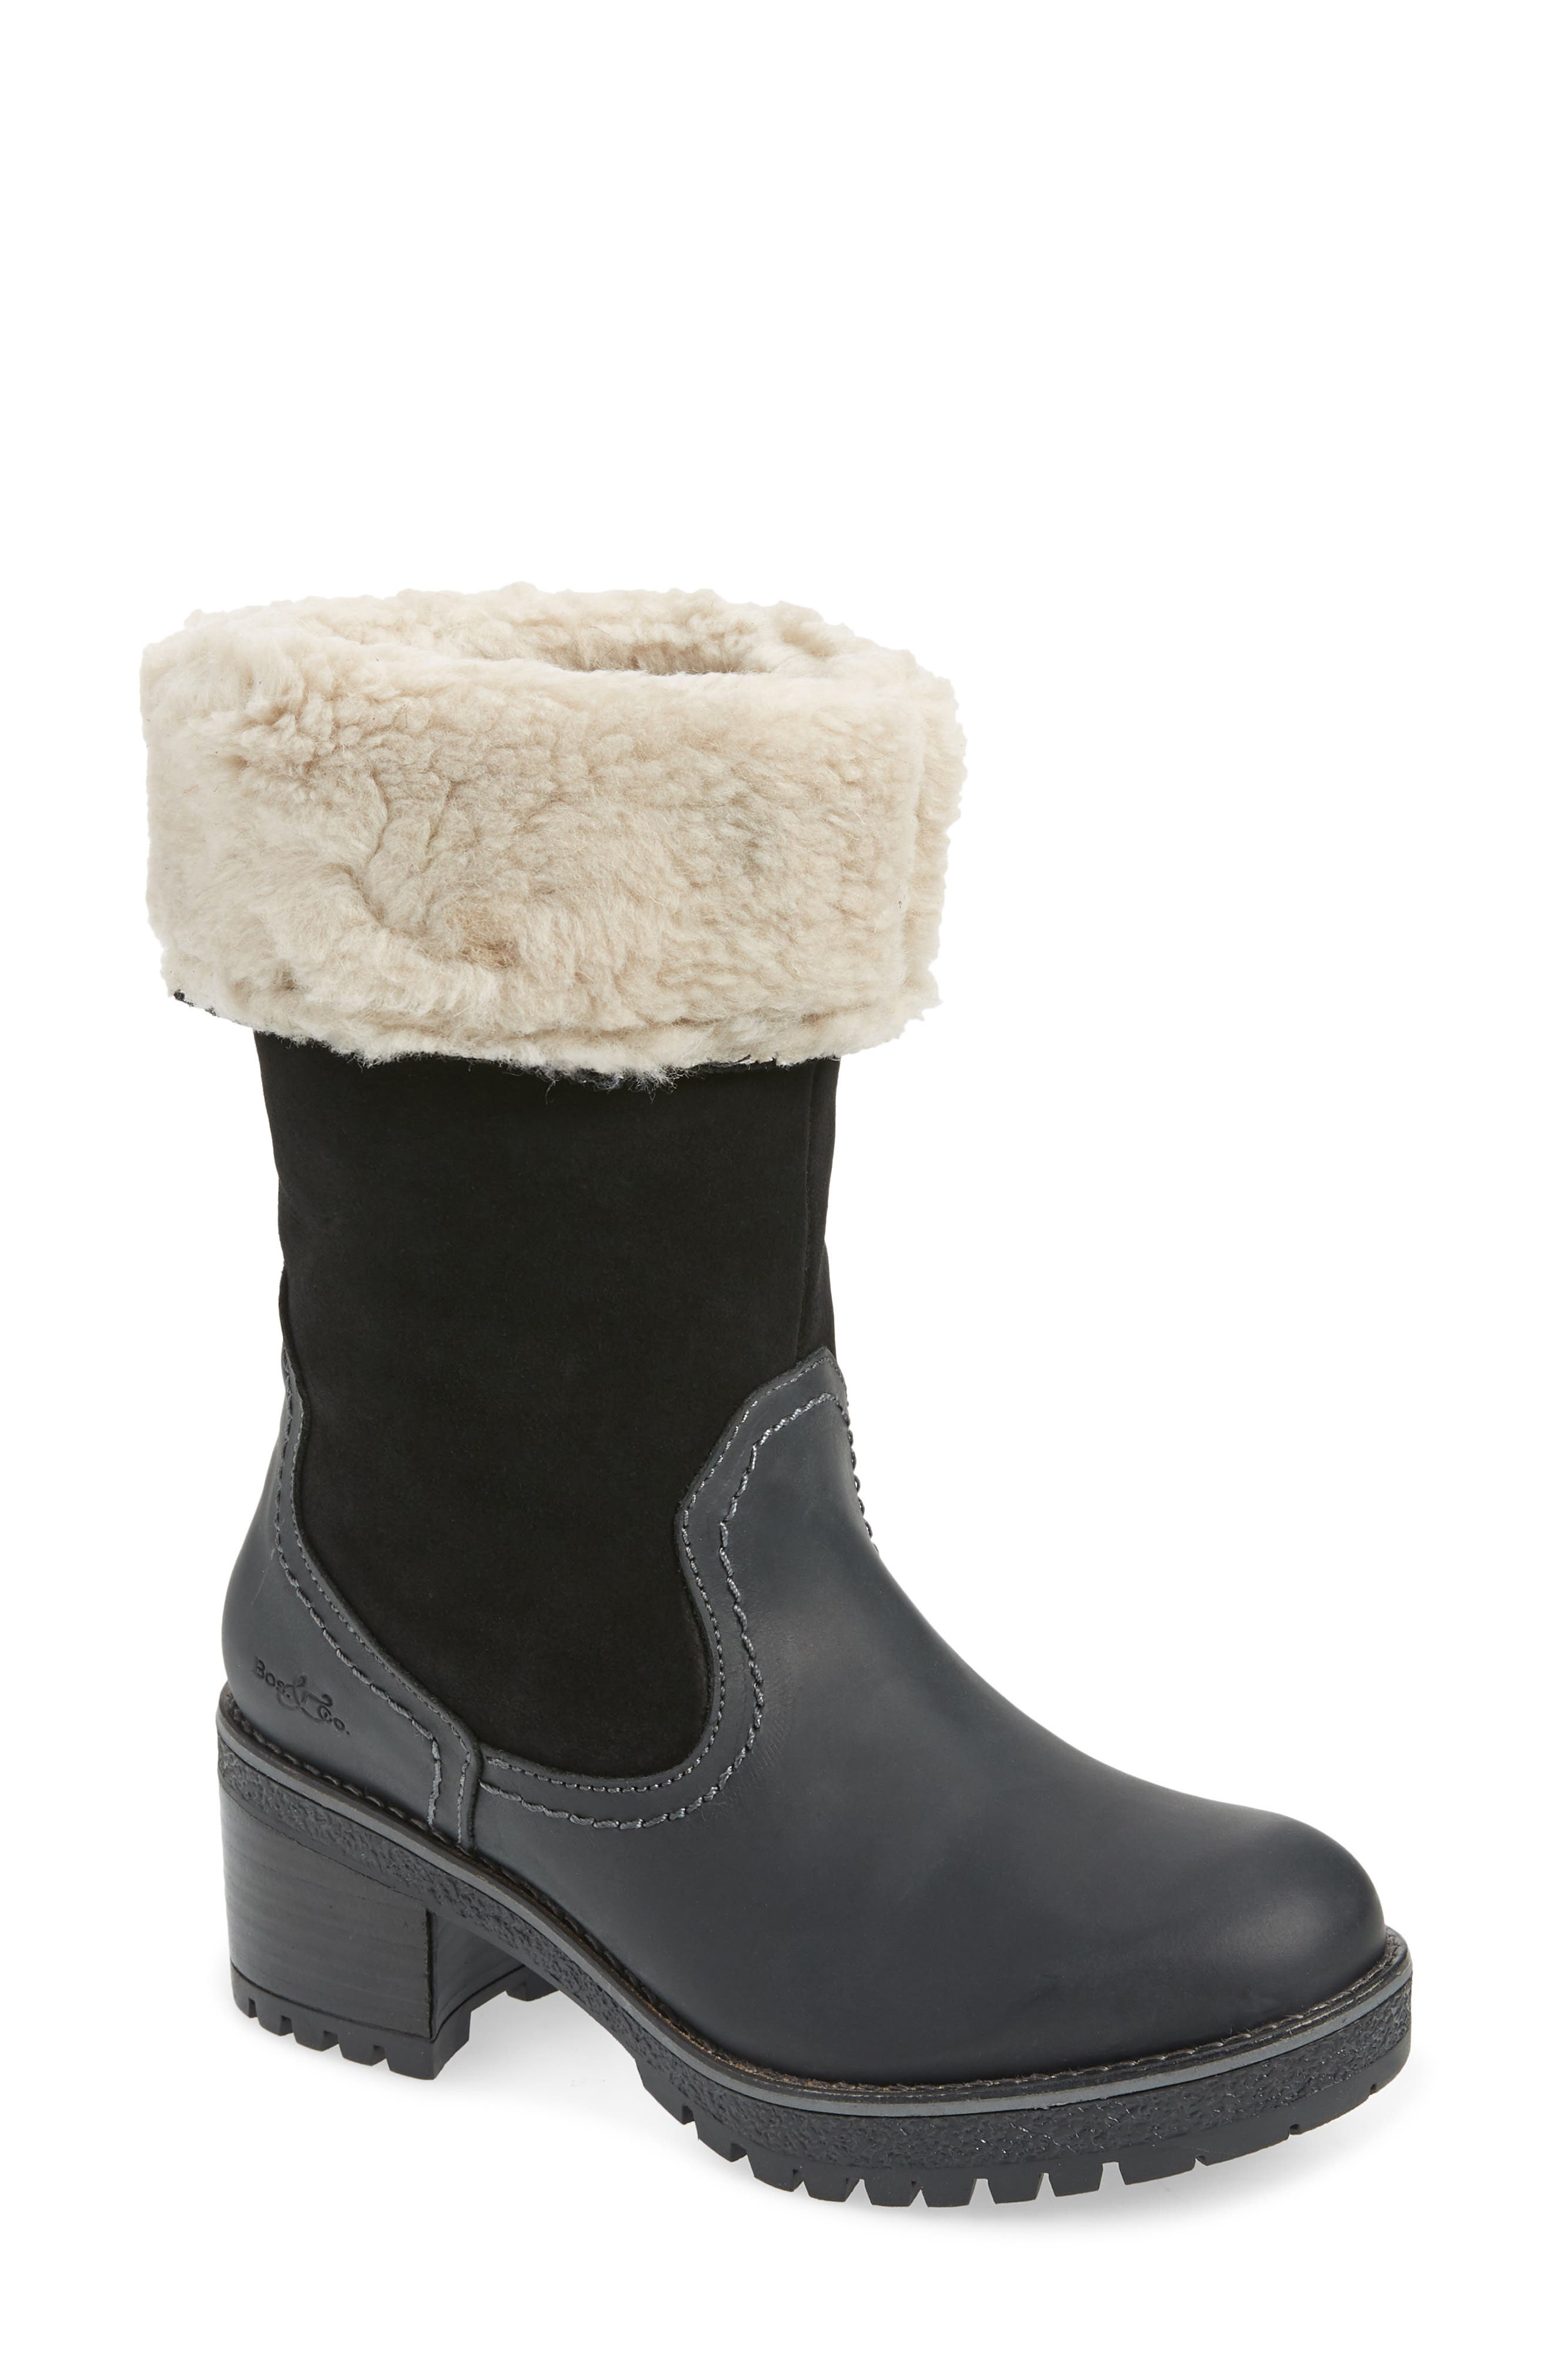 Plush merino wool forms the lining and fold-over cuff of a lug-sole boot that\\\'s a waterproof, weather-ready must-have. Style Name: Bos. & Co. Motive Waterproof Boot (Women). Style Number: 6086145. Available in stores.